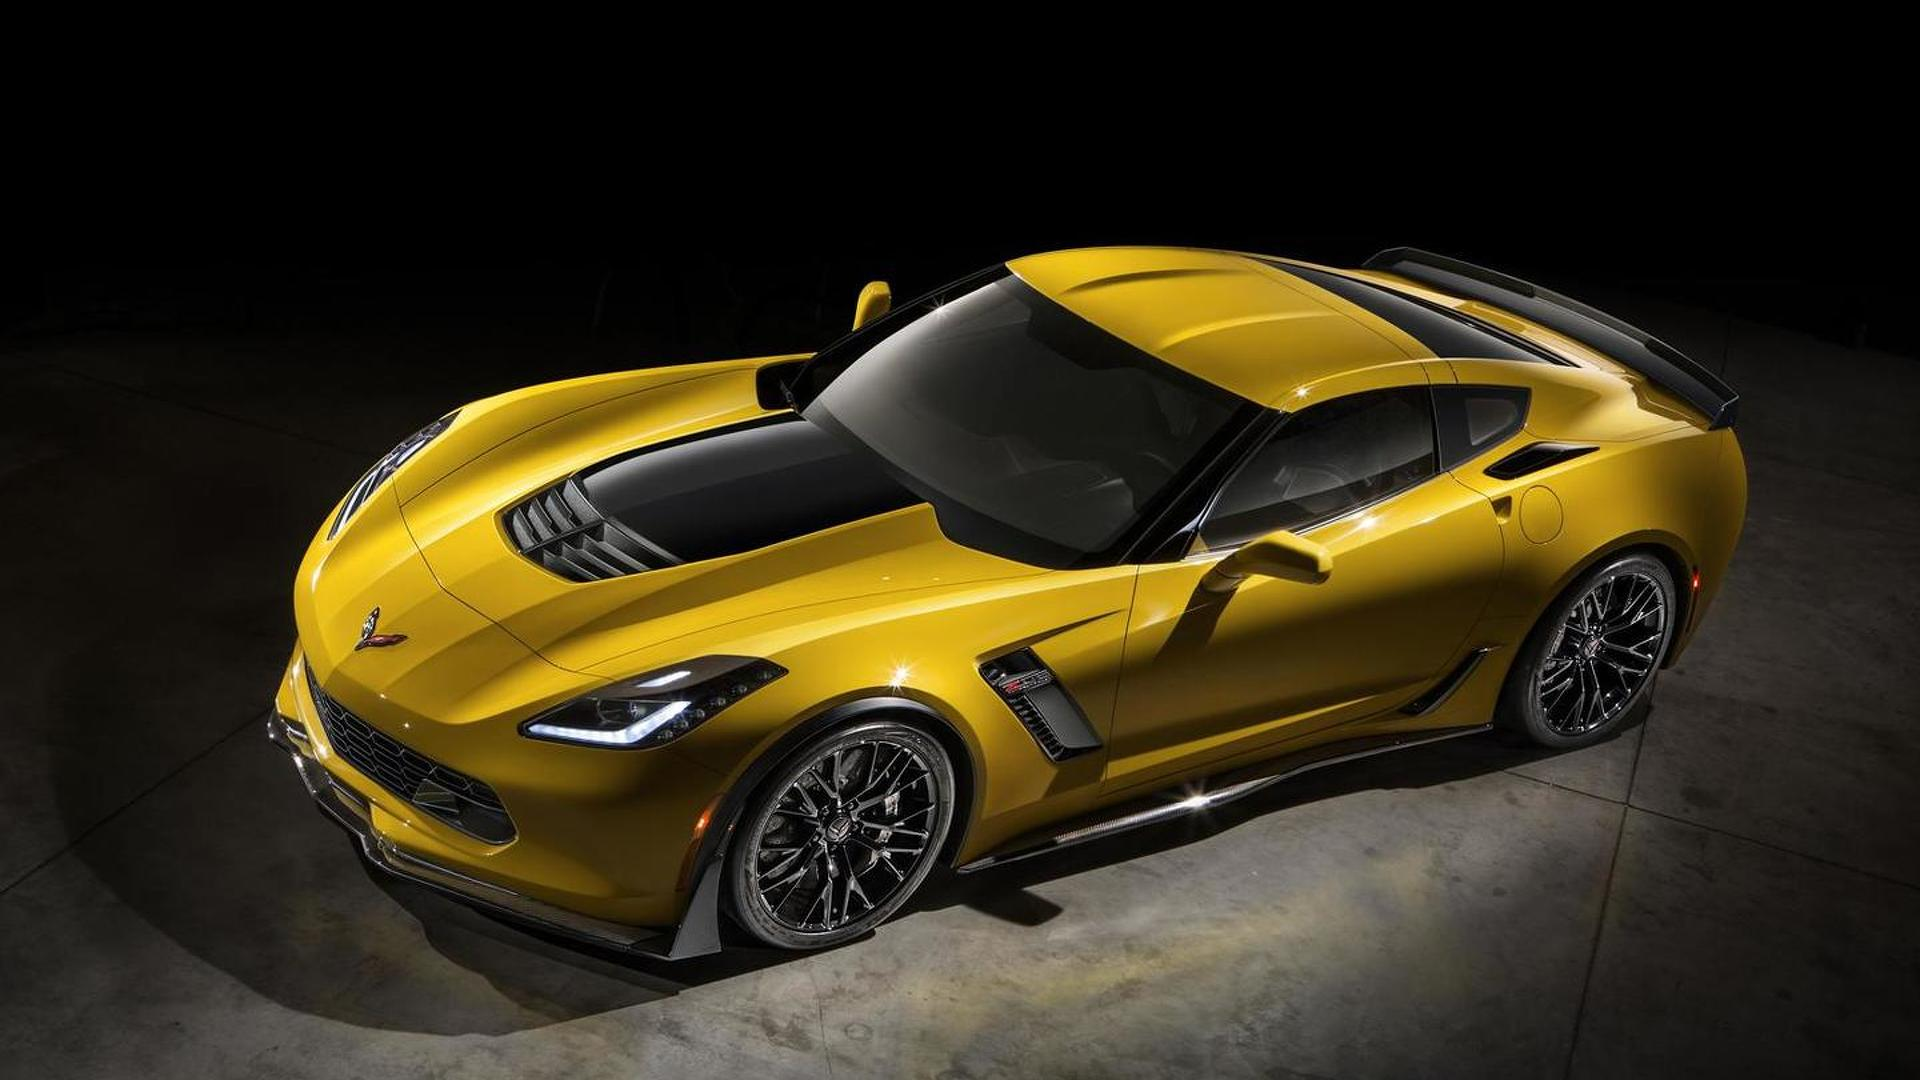 Mid Engined 2017 Chevrolet Corvette Zora Zr1 Could Be Sold Alongside C7 Hybrid Awd C8 Coming 2020